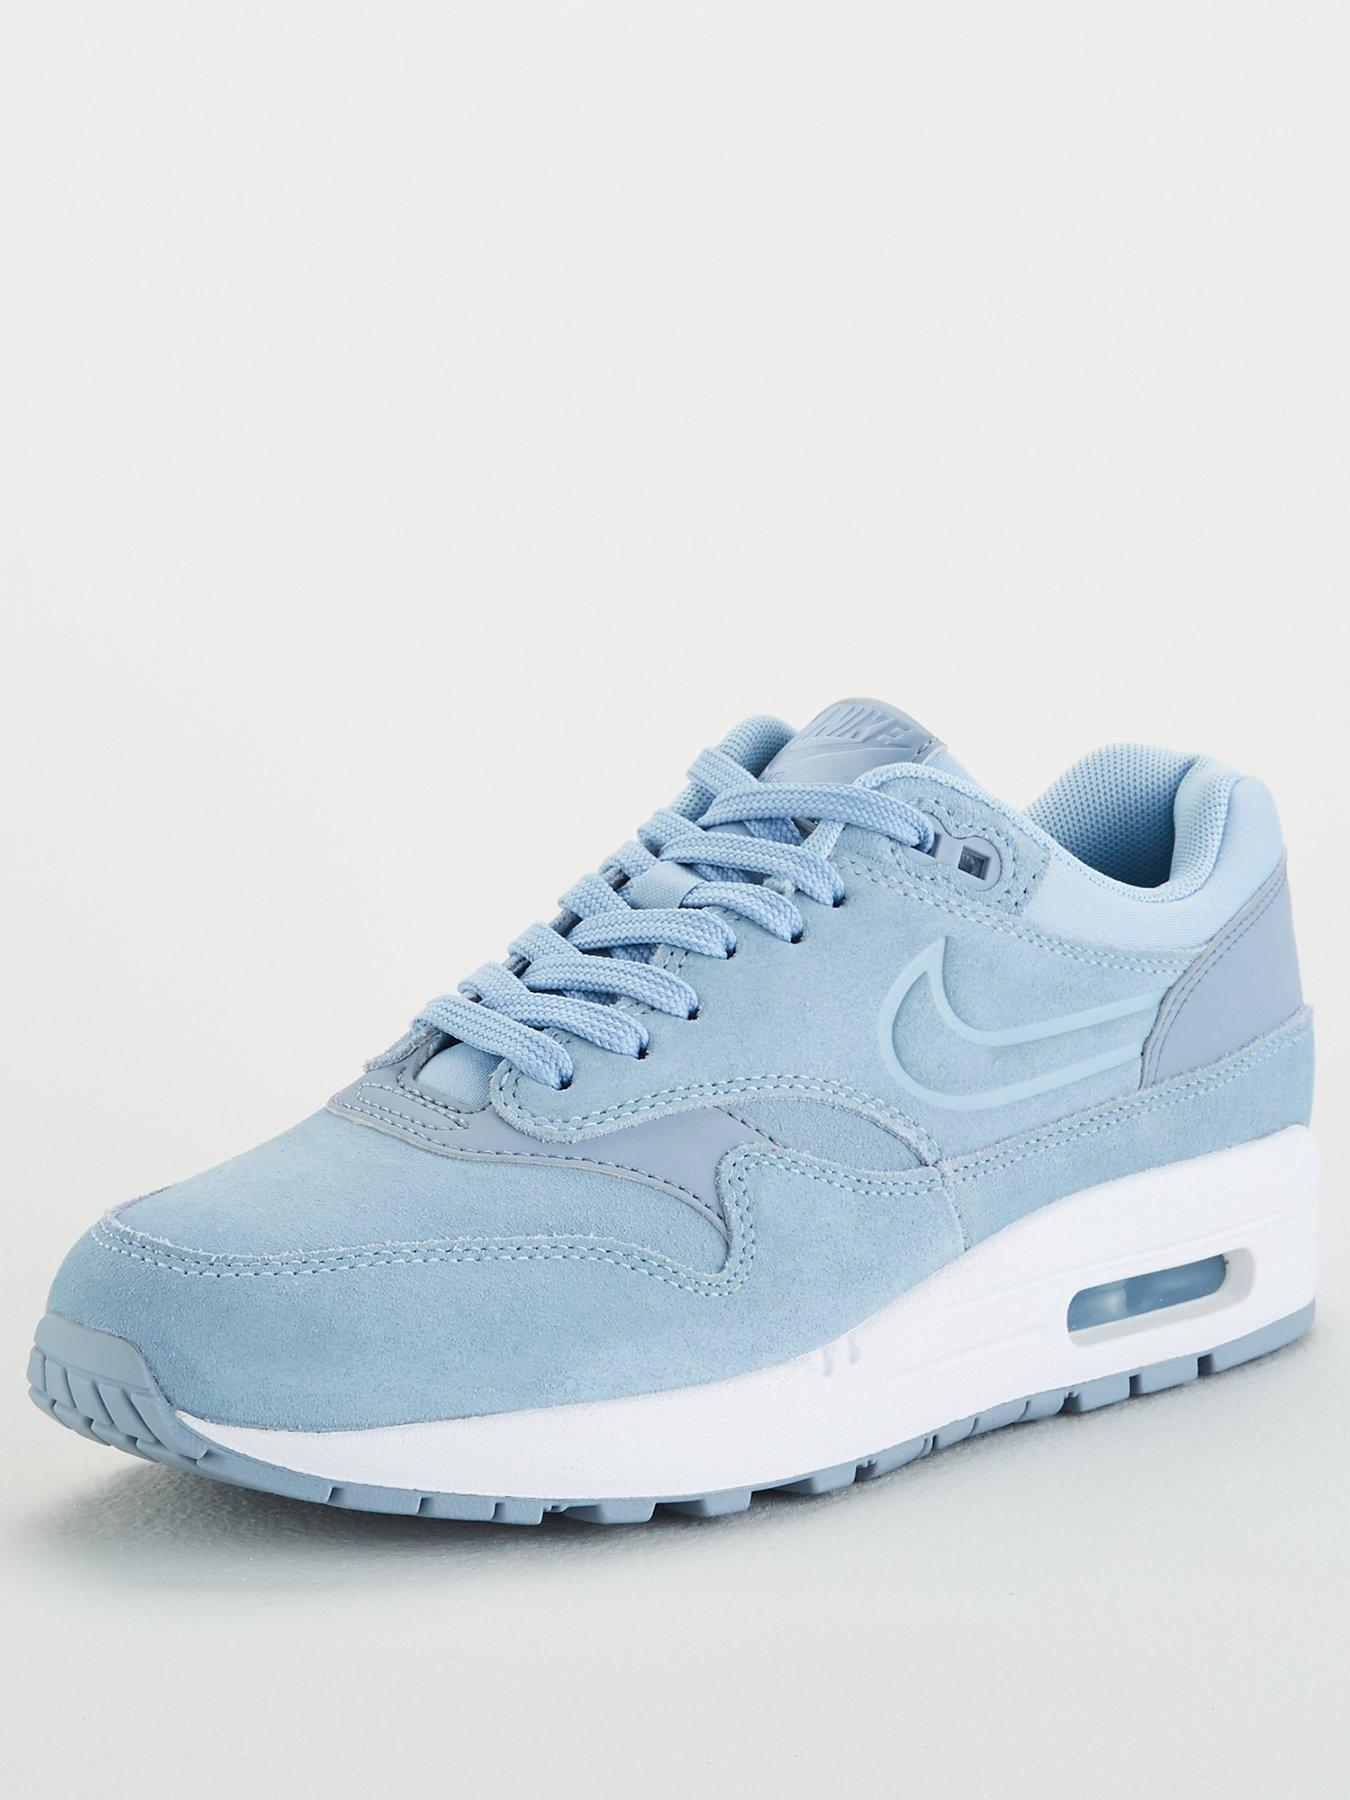 Nike Light Blue Paris City Collection Air Max 1 Ultra Trainers | Womenswear | Liberty.co.uk